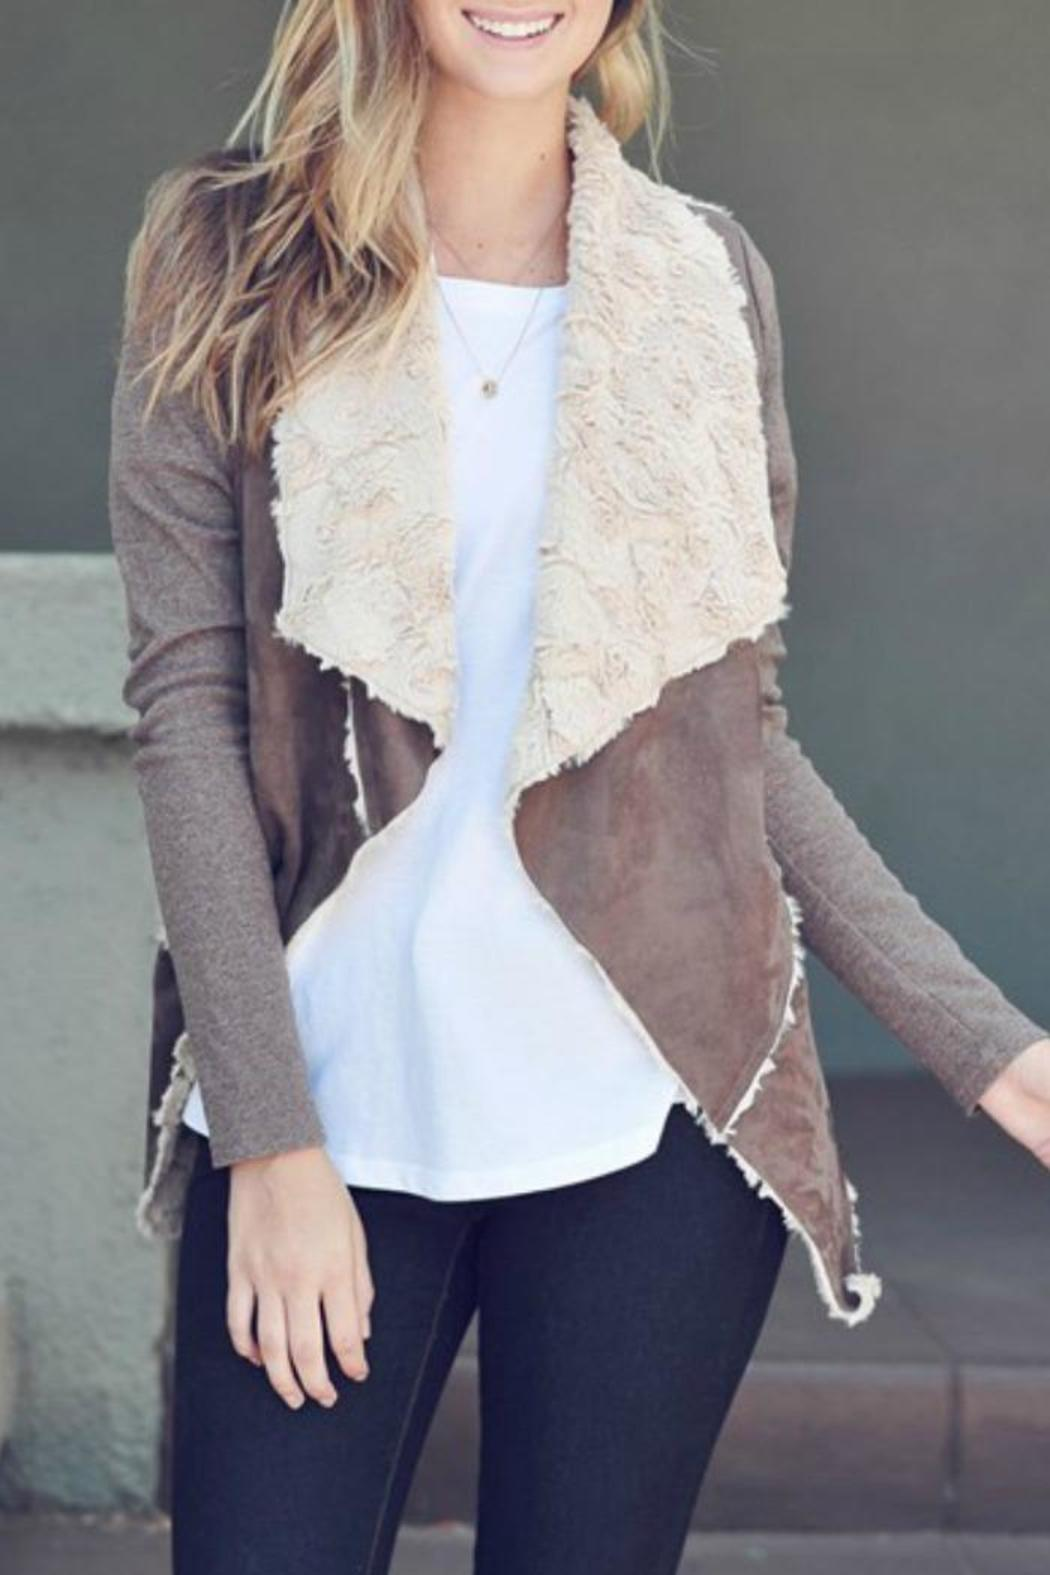 73b999897e42d Double Zero Faux Fur Suede Jacket from Texas by The Closet Monster ...